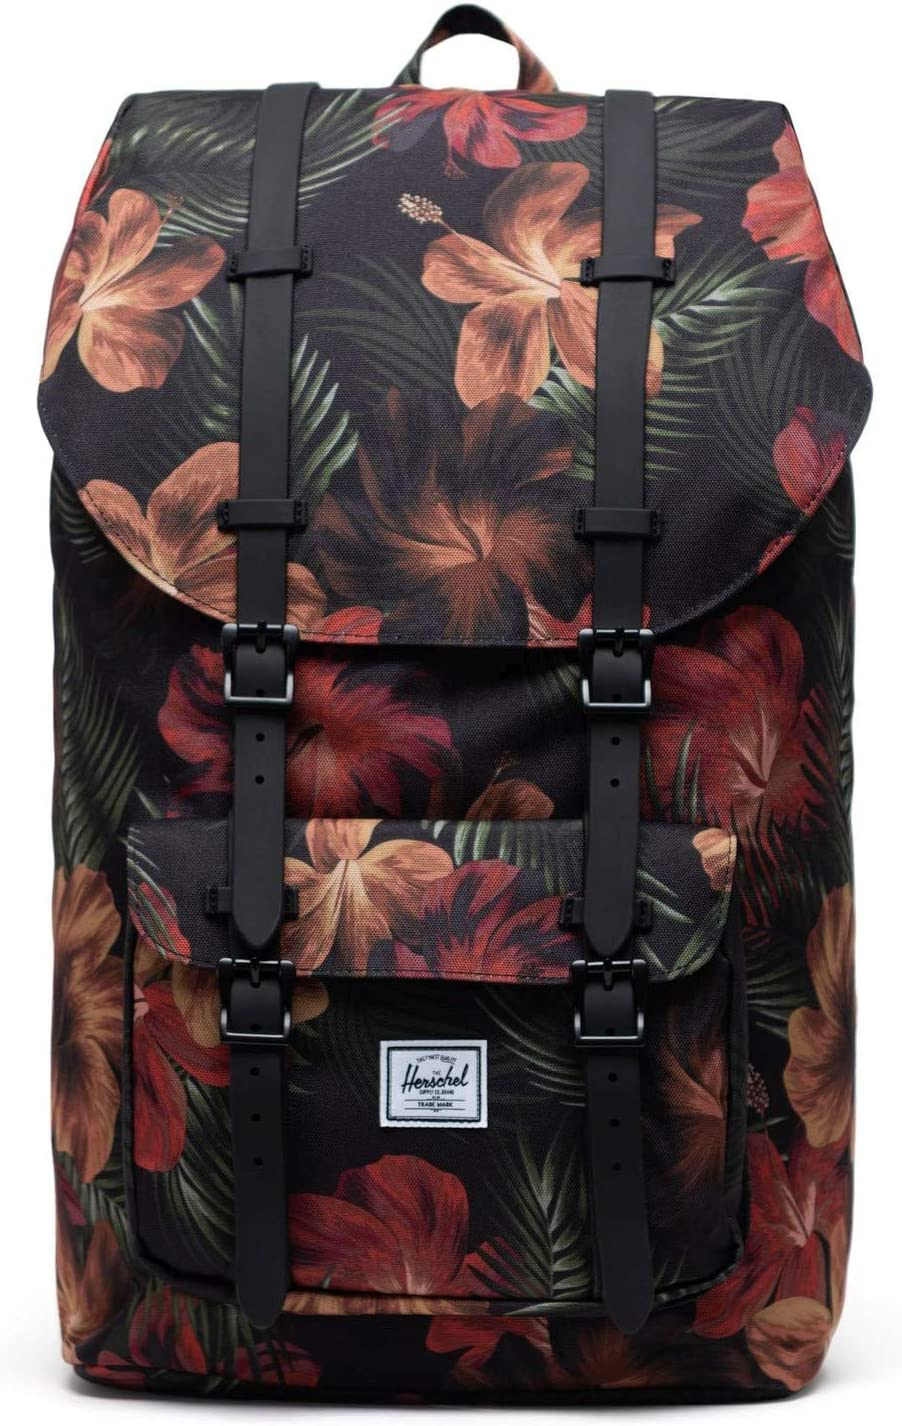 Herschel Little America Laptop Backpack, Tropical Hibiscus, Classic 25.0L